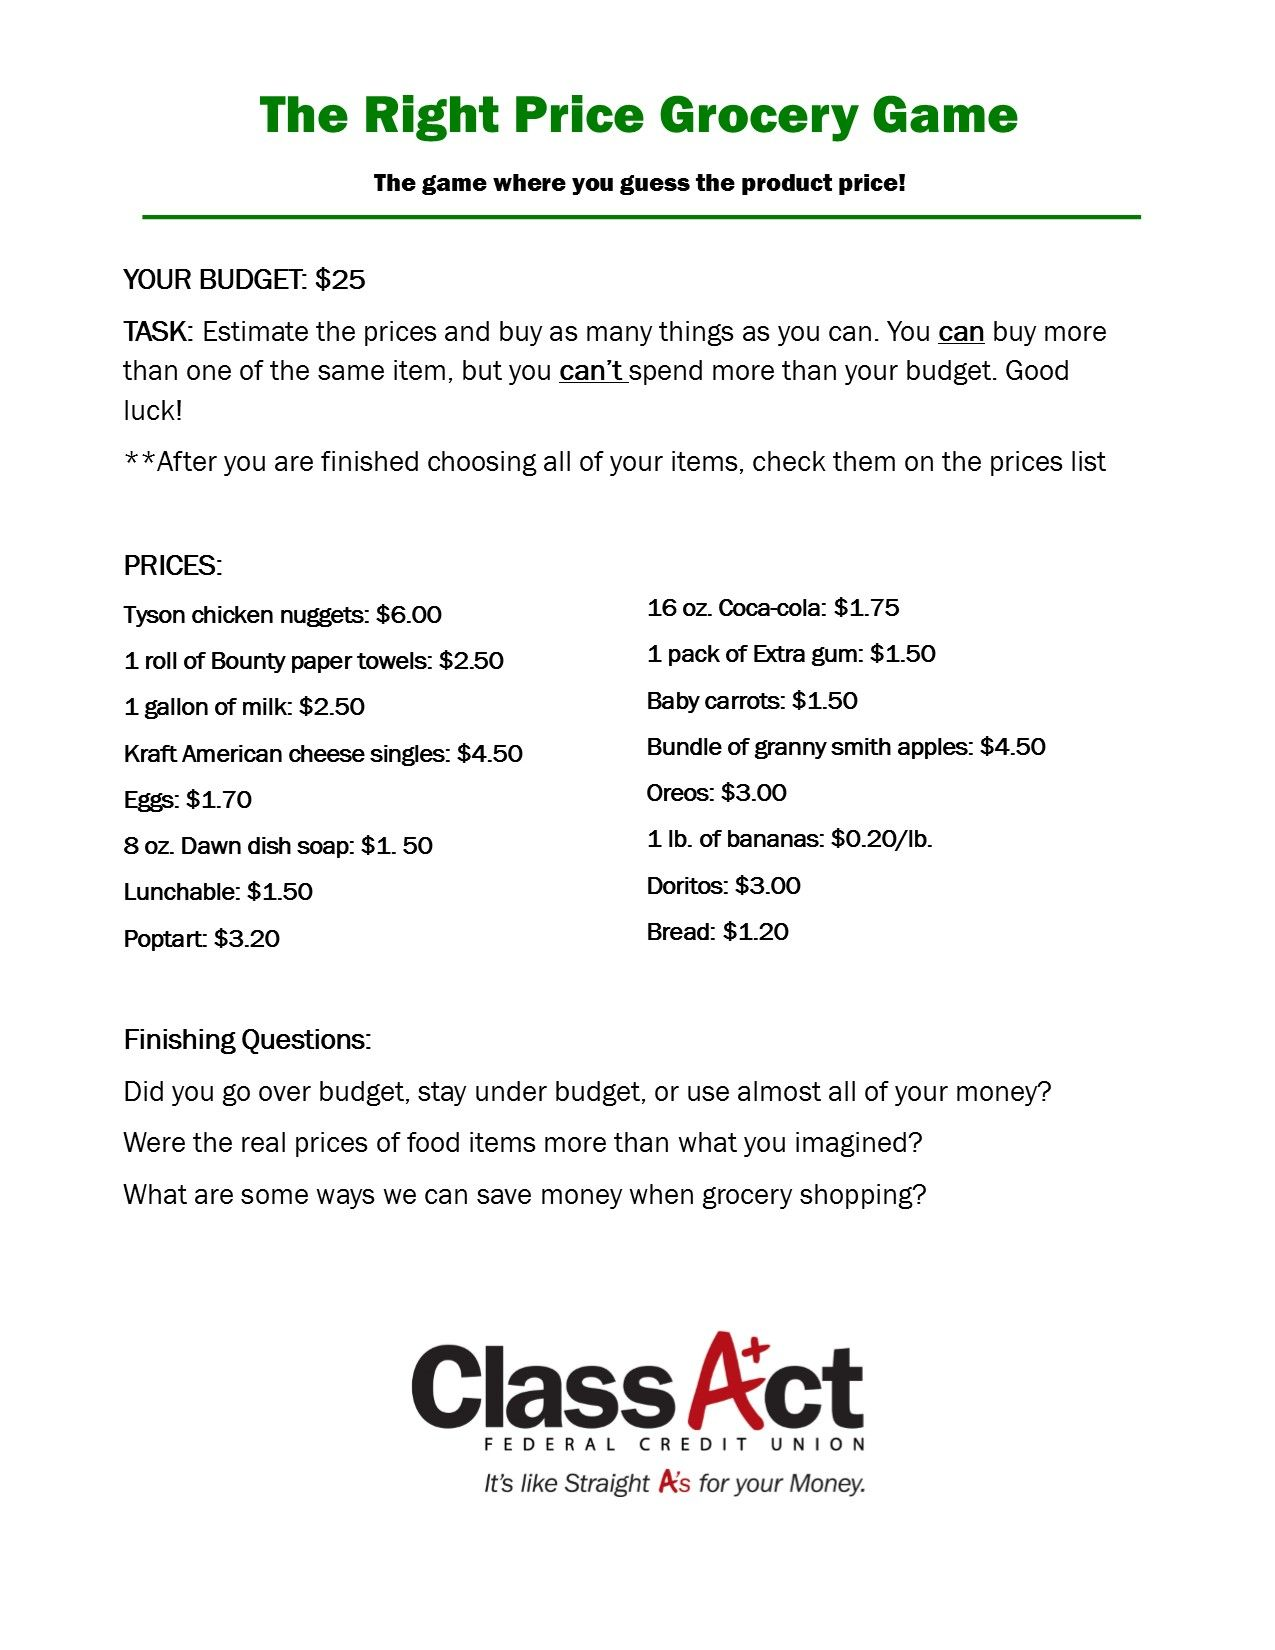 This Is A Financial Classroom Activity For Teachers To Use